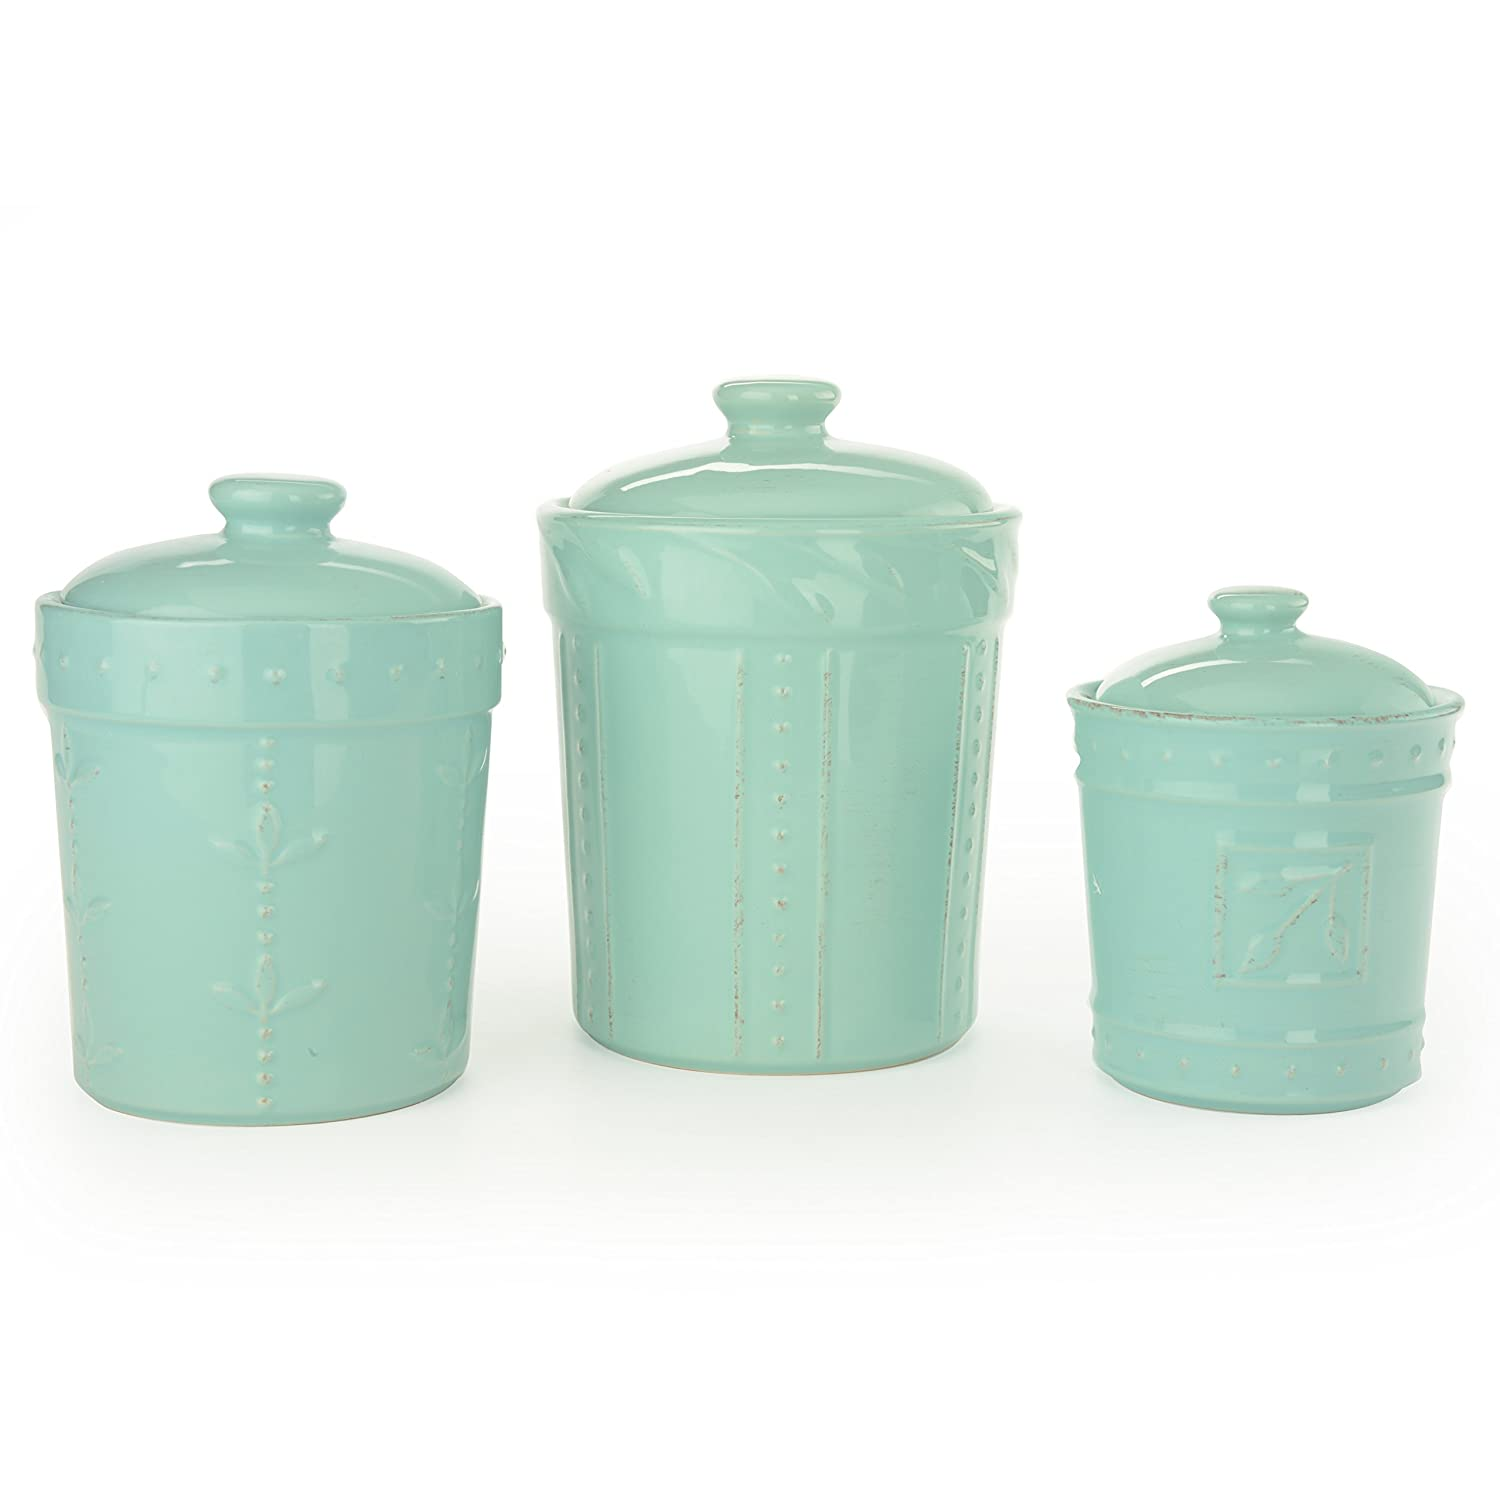 Amazon.com: Signature Housewares Sorrento Collection Canisters (Set ...